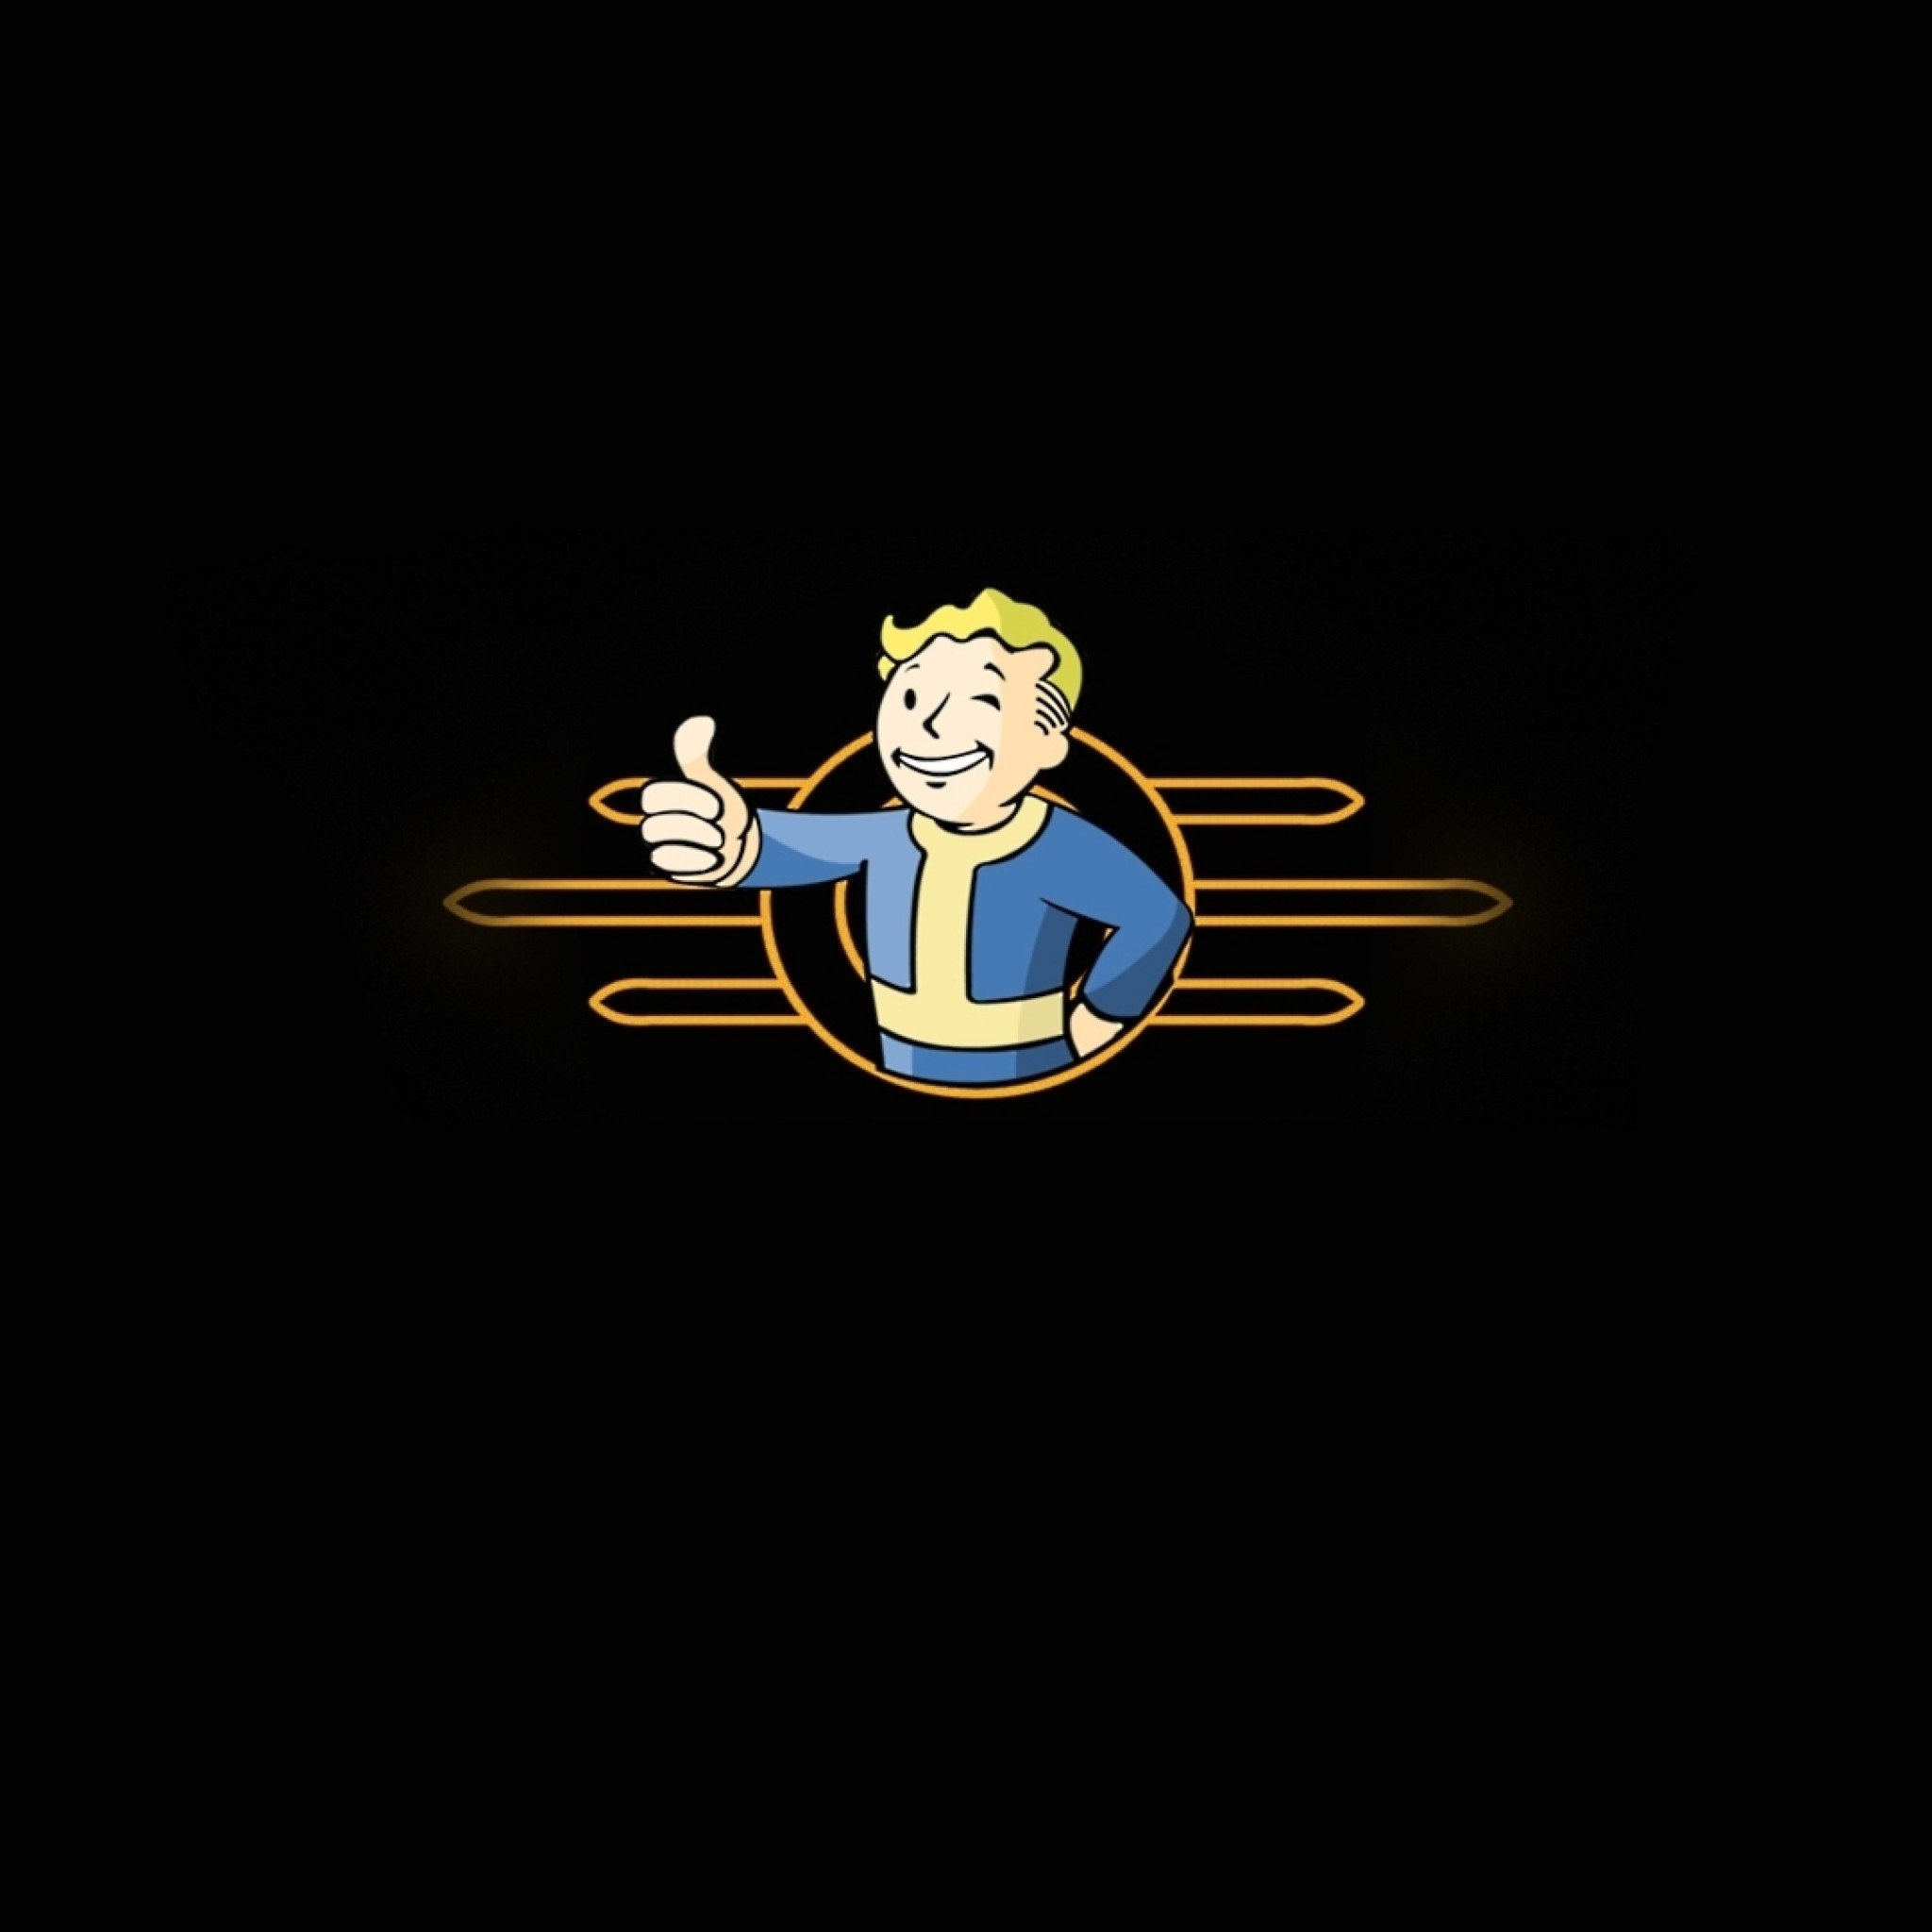 vault-boy-wallpapers-and-backgrounds-games-picture-vault-